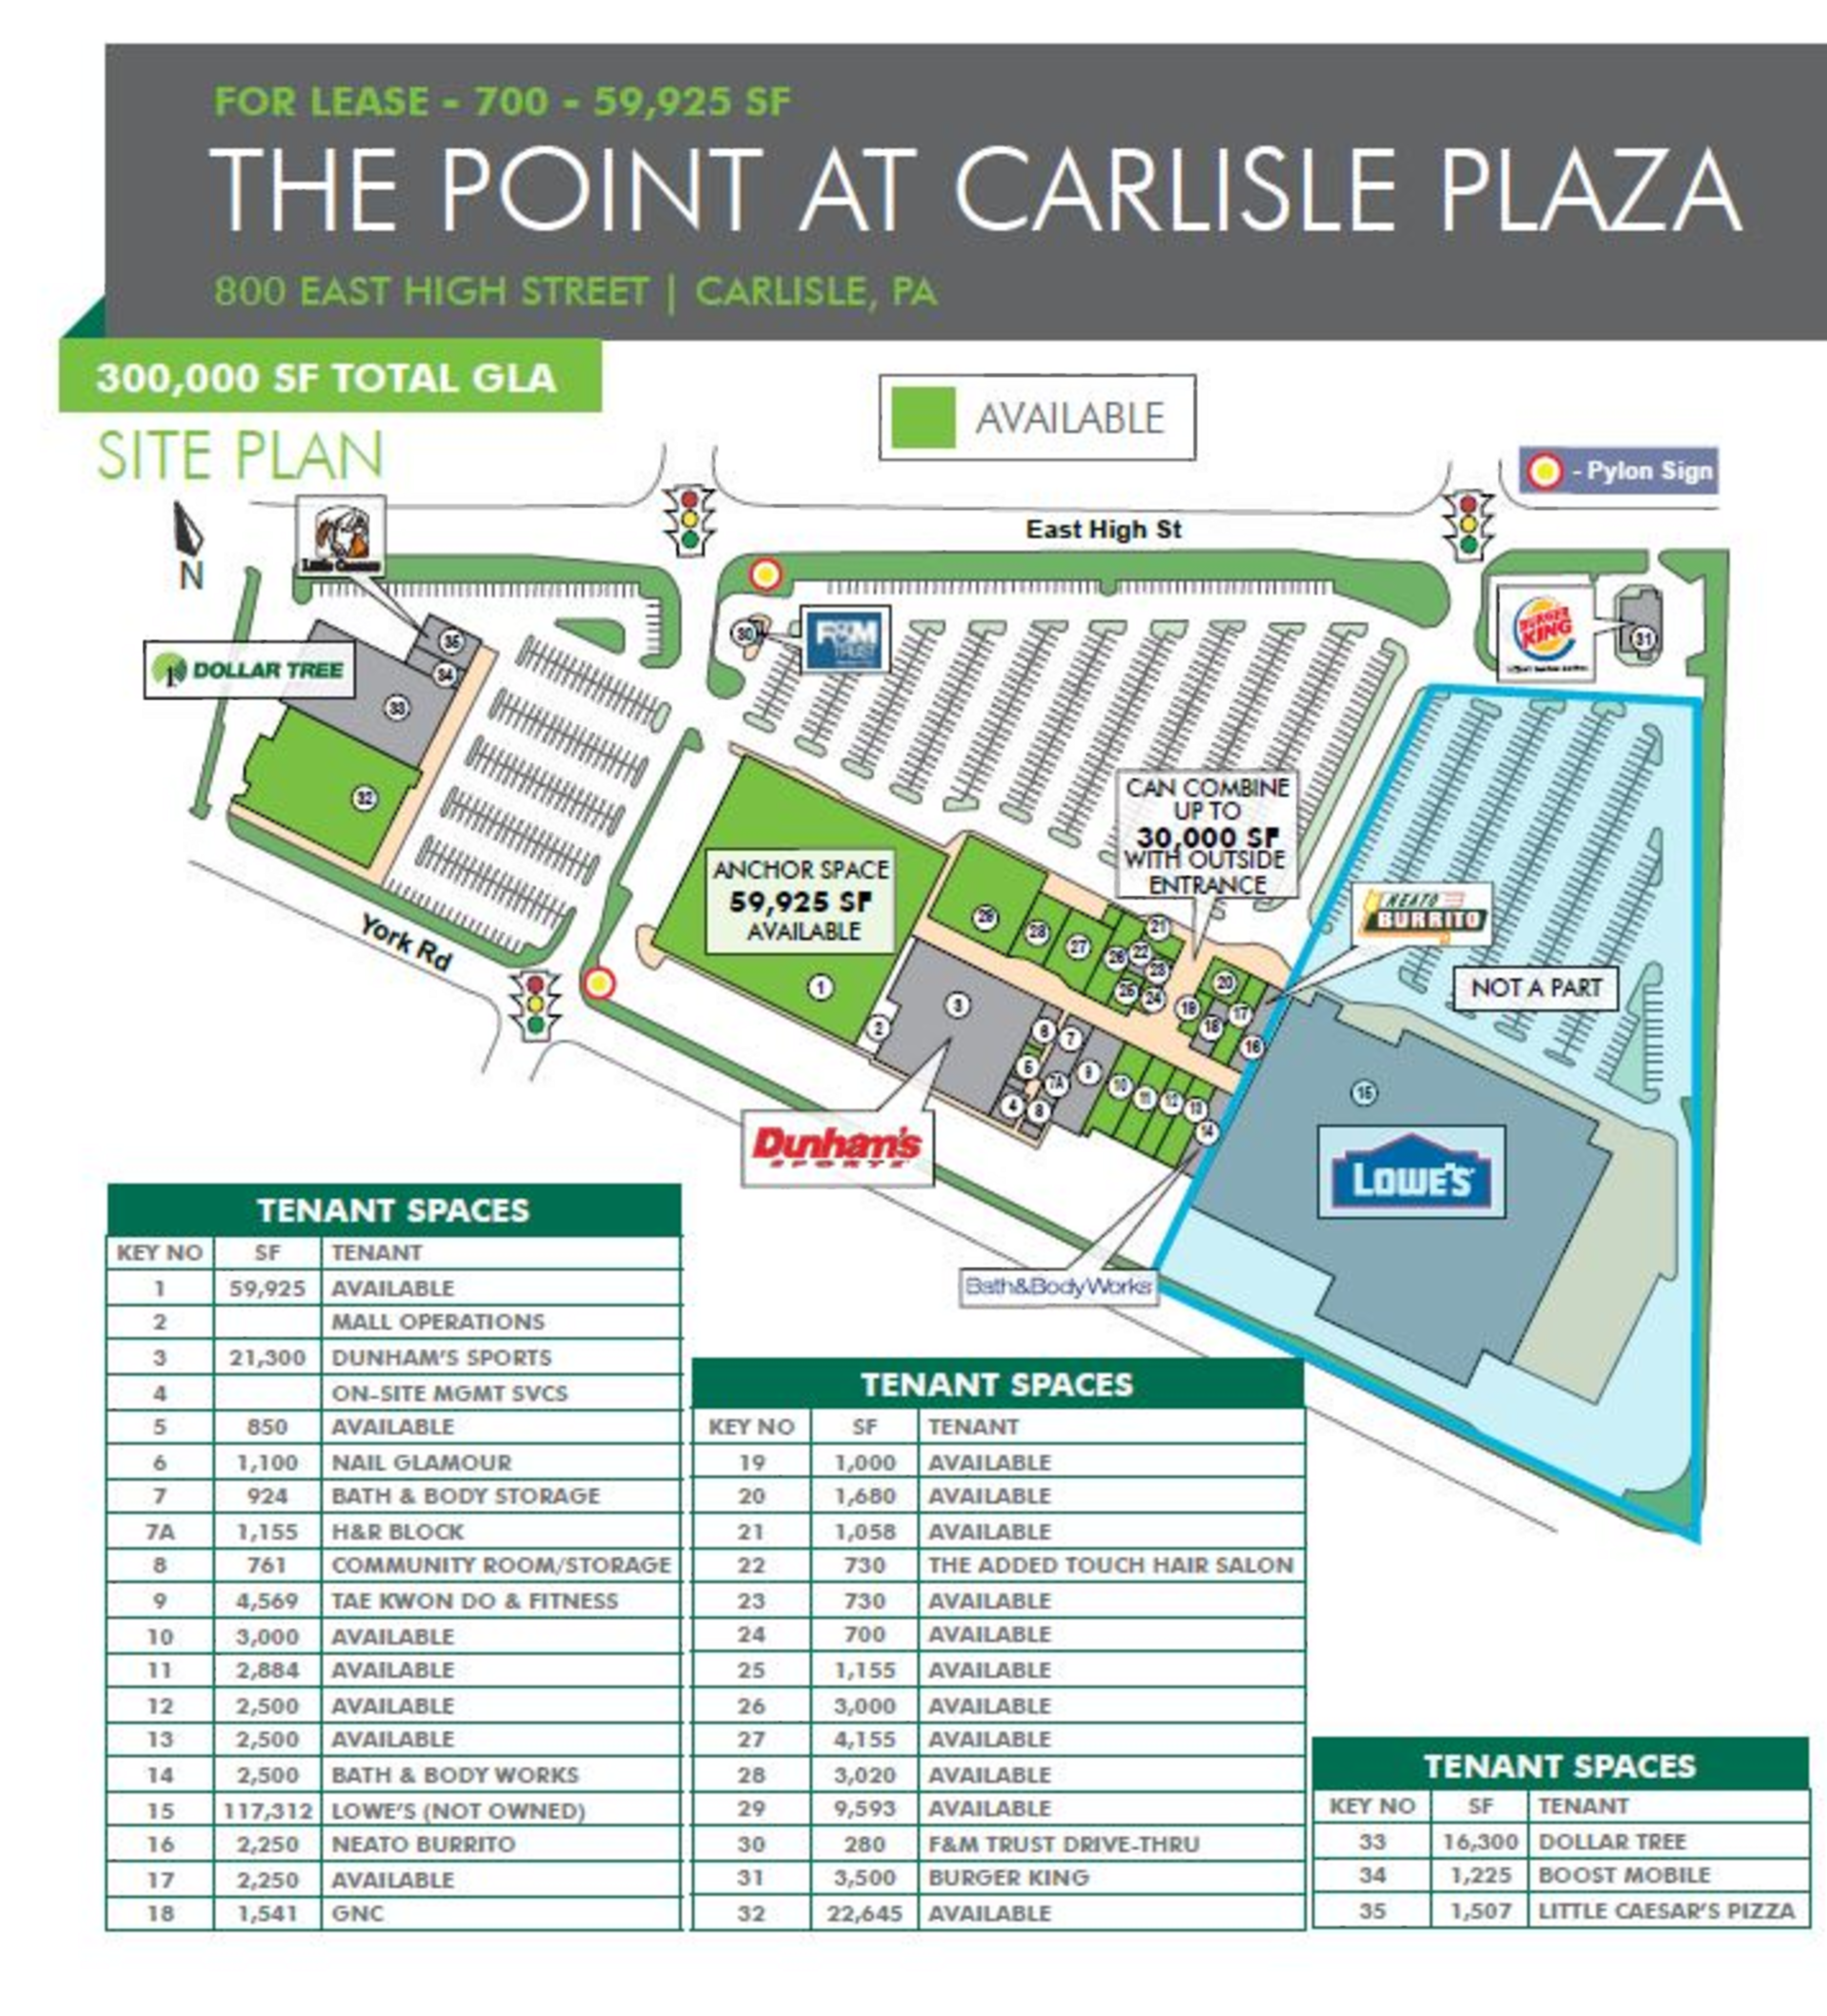 The Point at Carlisle Plaza: site plan